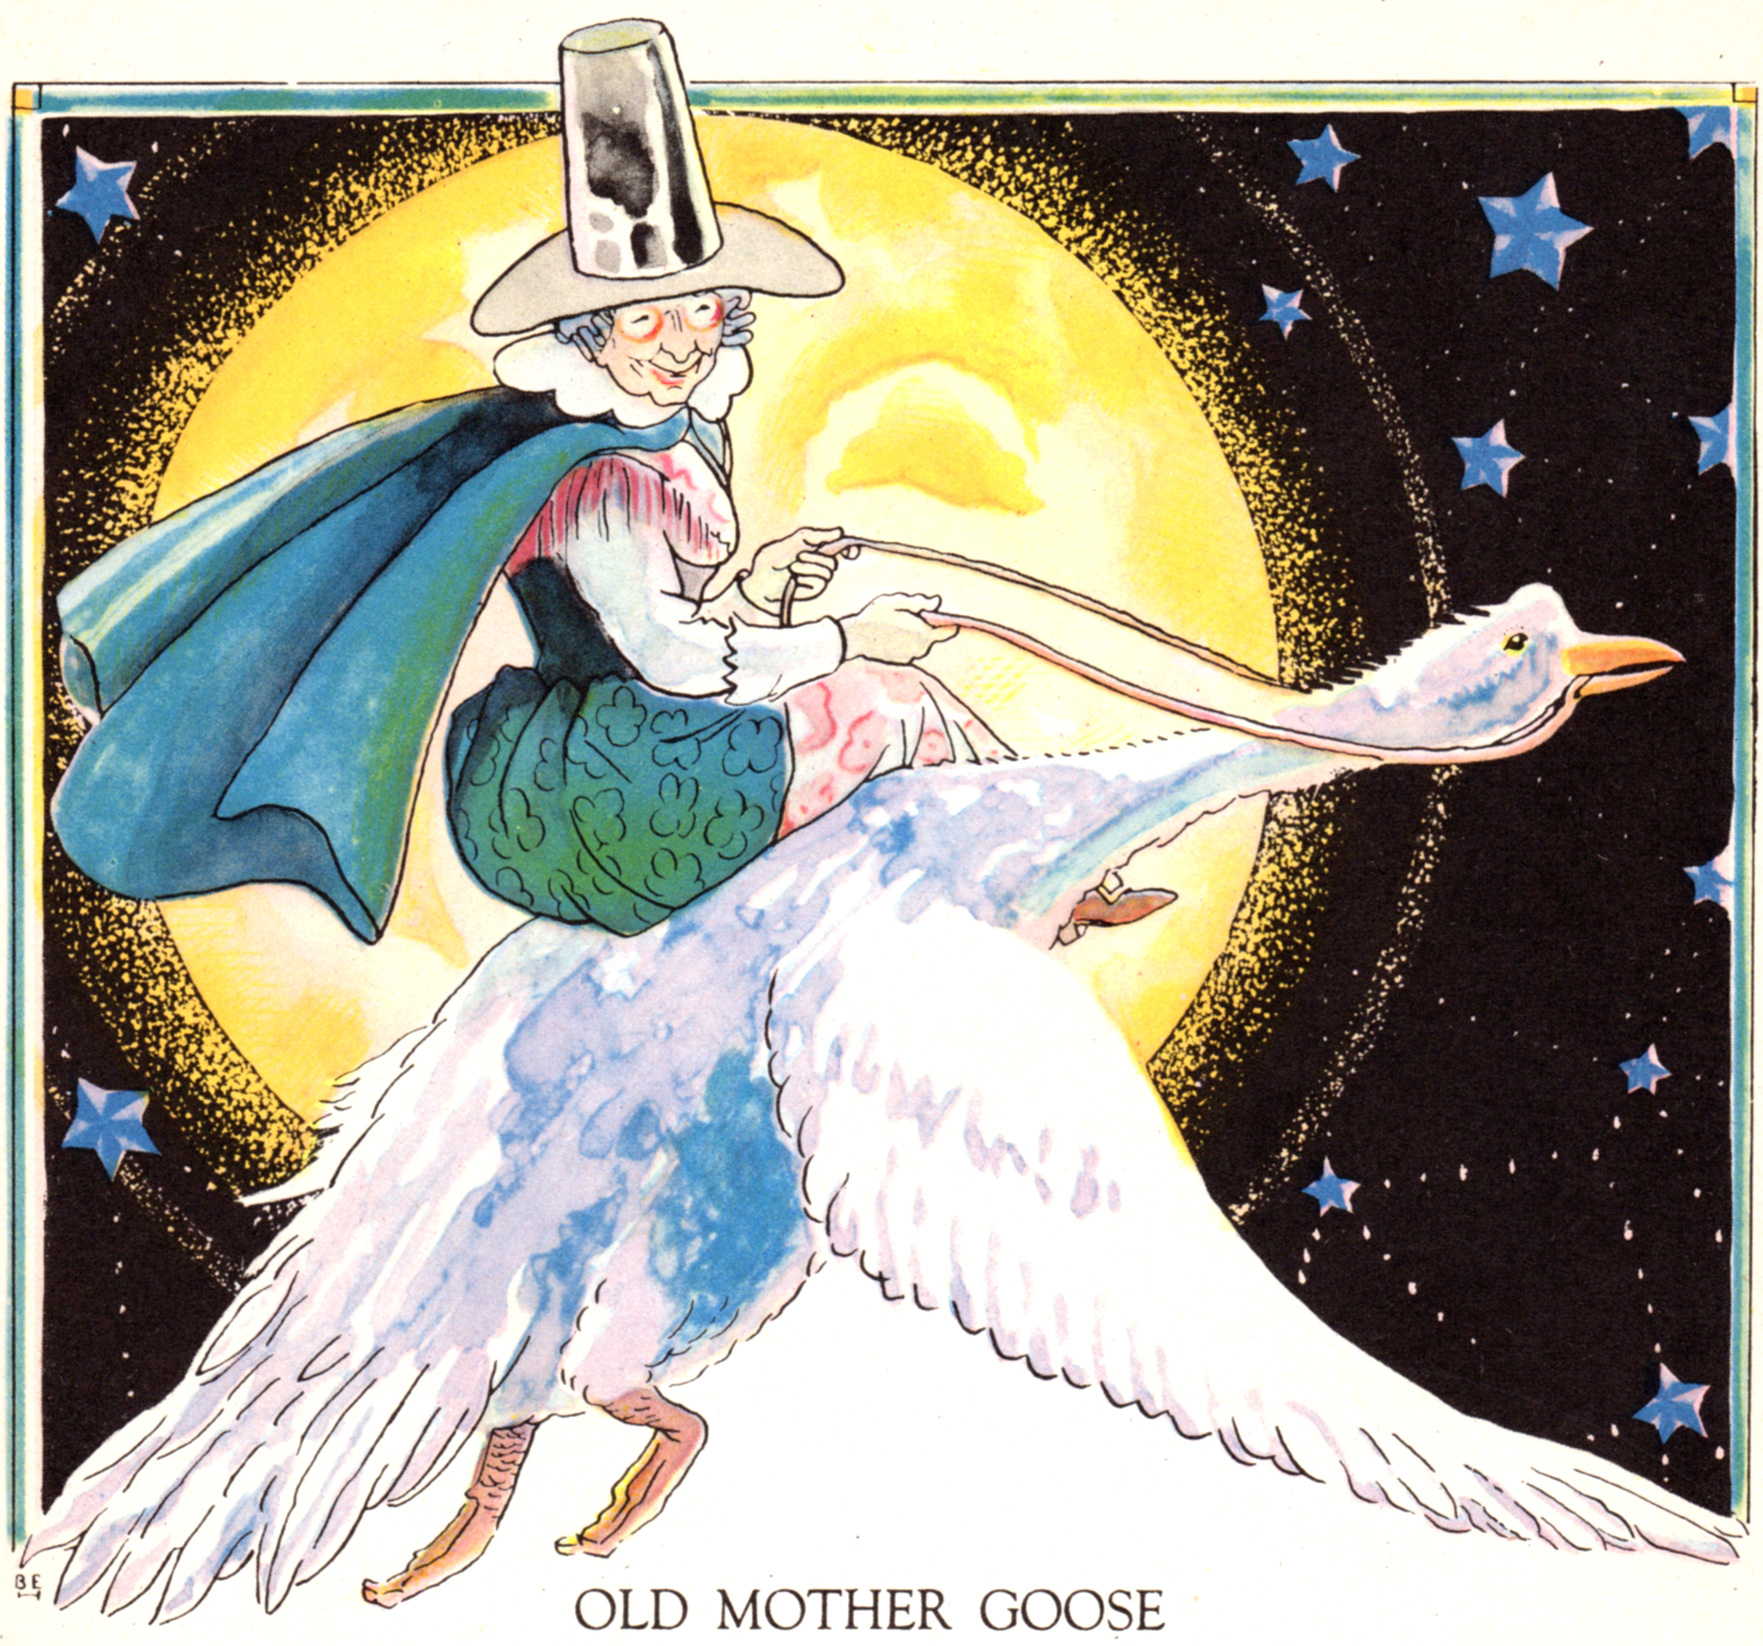 Mother Goose illustrations by Berta Hader (1944)